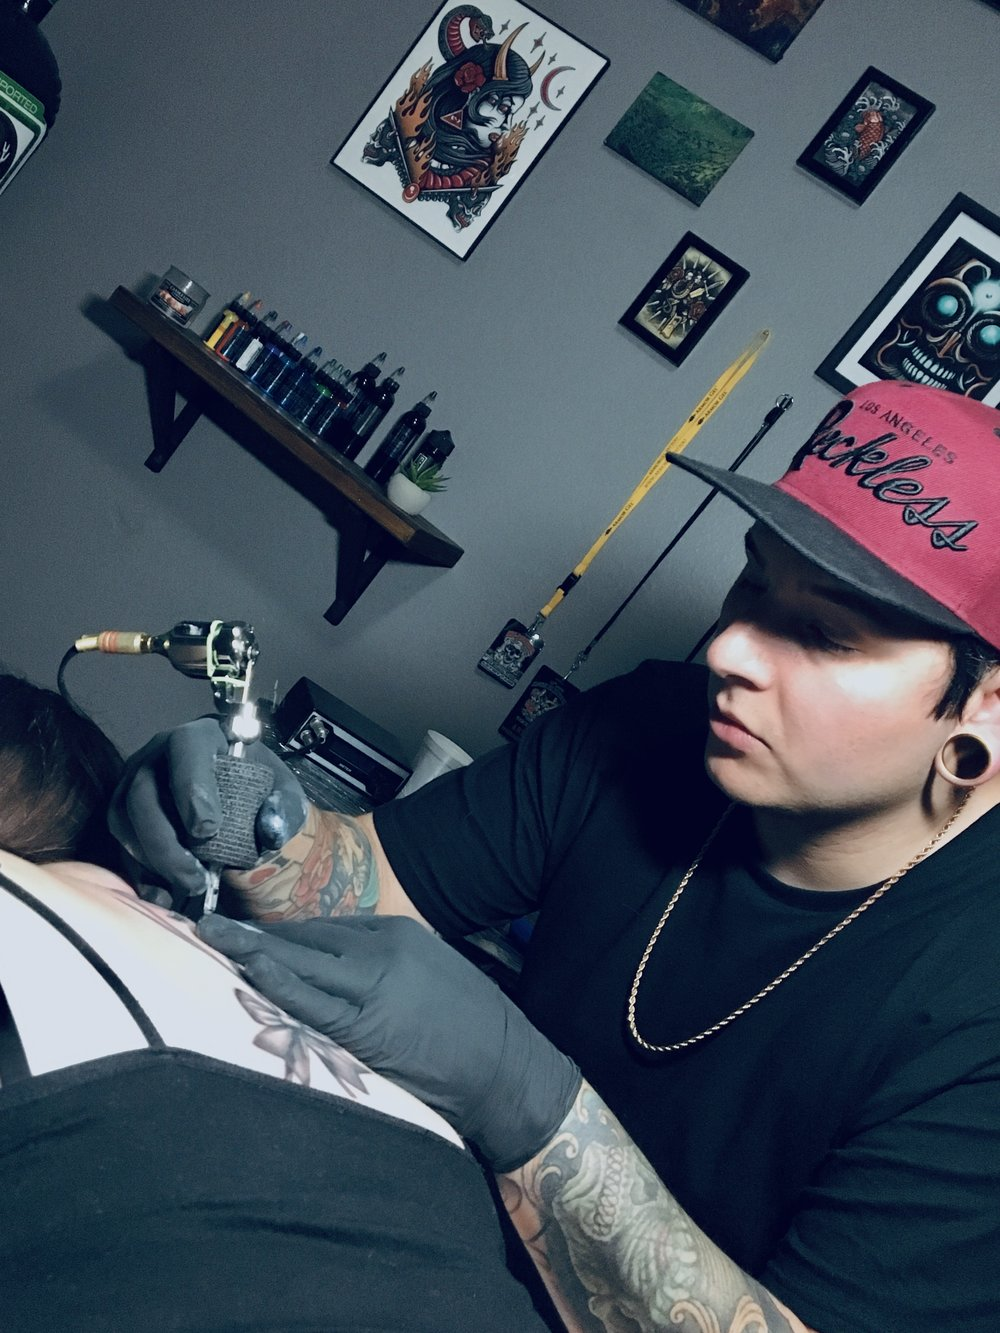 Josh Levine - Josh's specialty is black and grey tattoos including portraits and realism. Click his photo to check out his work!